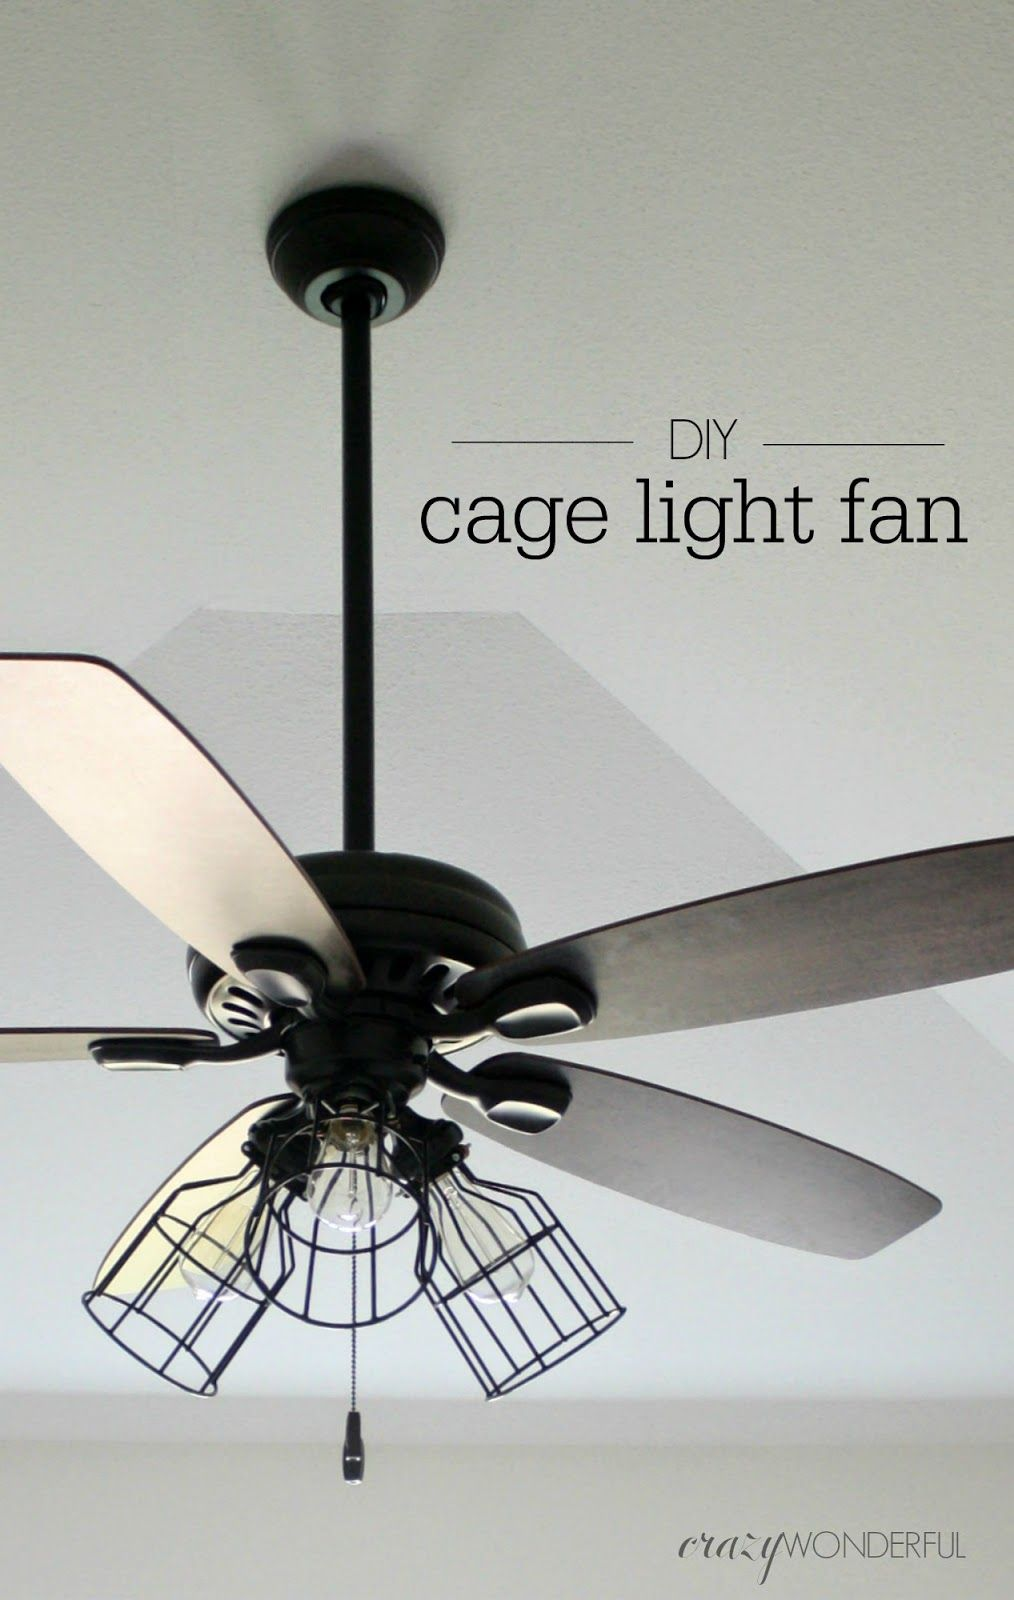 Zwarte Kooilamp Toepassingen Cage Light Fan Light Fixtures Ceiling Fan Makeover